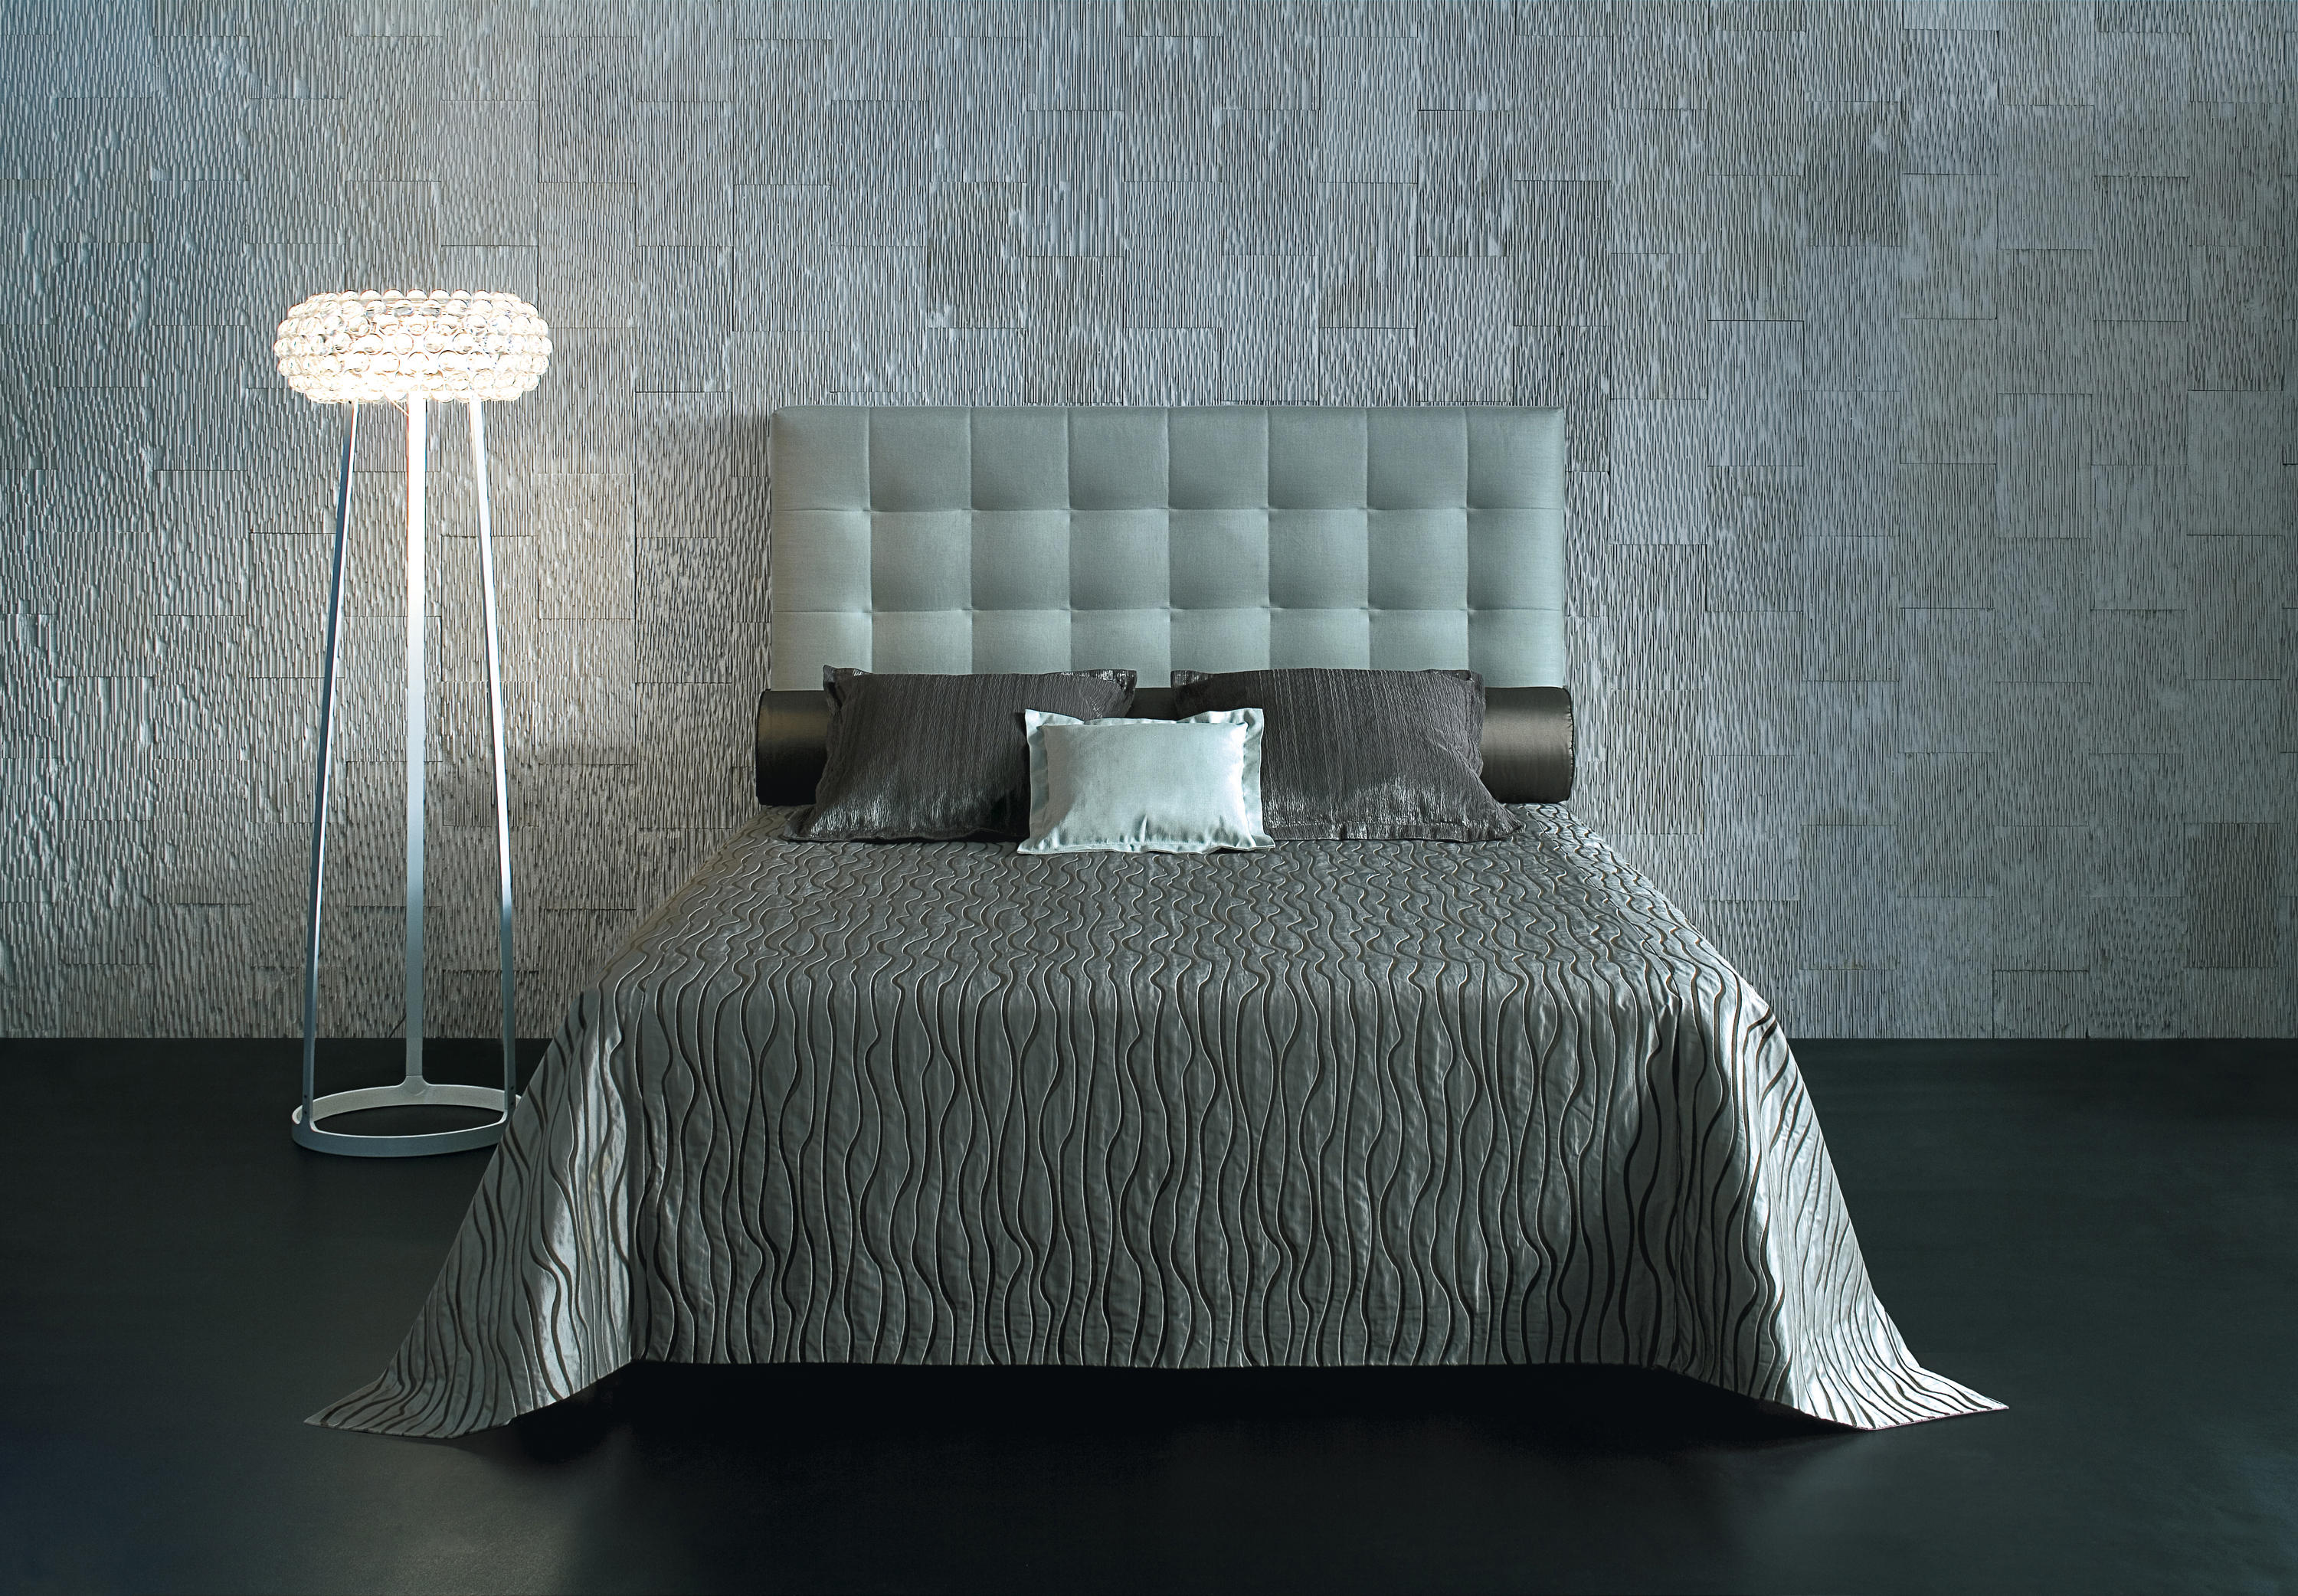 Sleeping systems collection prestige headboard colette by treca paris